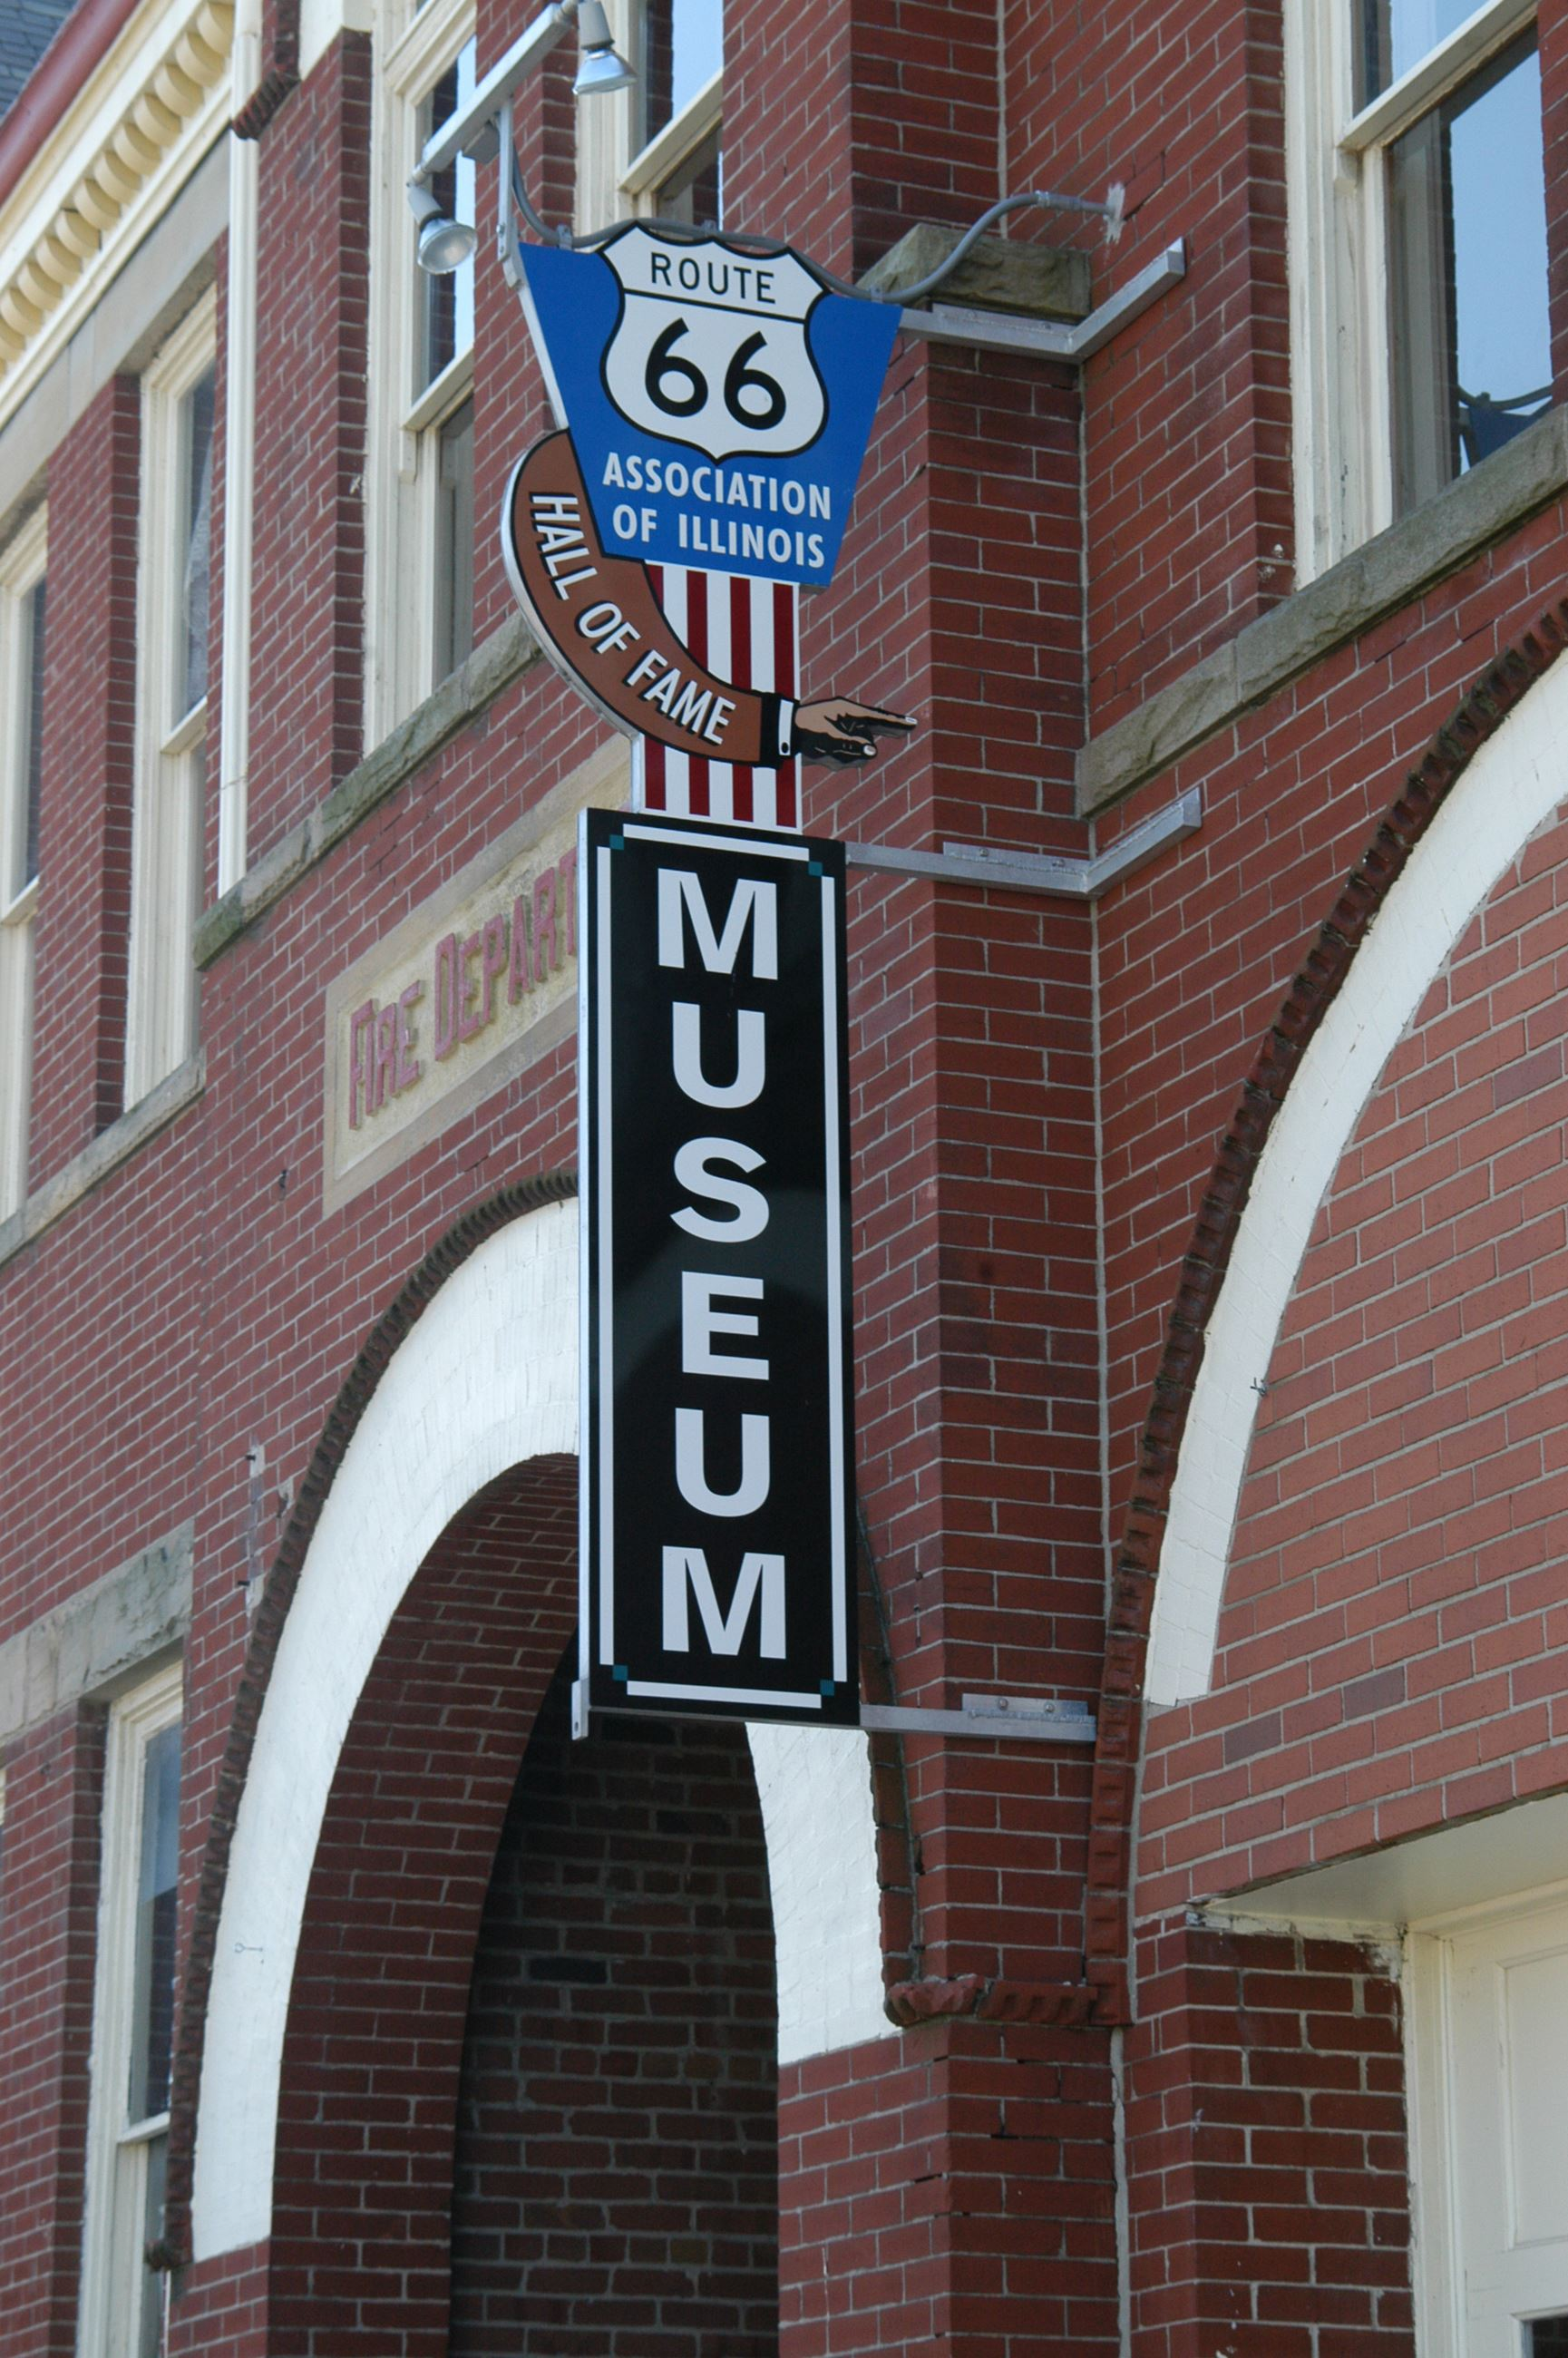 Route 66 museum sign